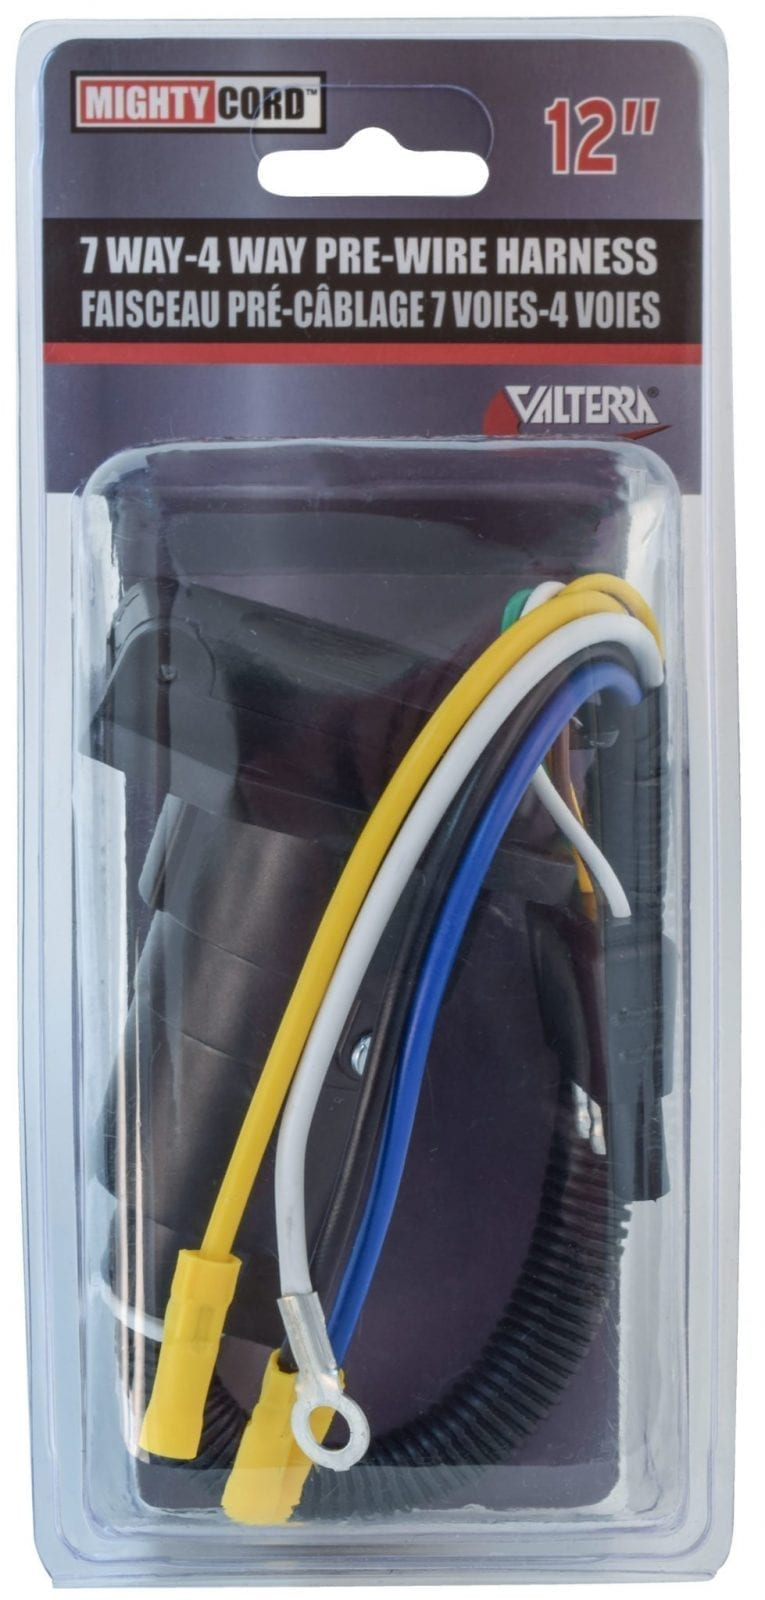 Mighty Cord 7 Way To 4 Pre Wire Harness 12 Carded Valterra Wiring 000